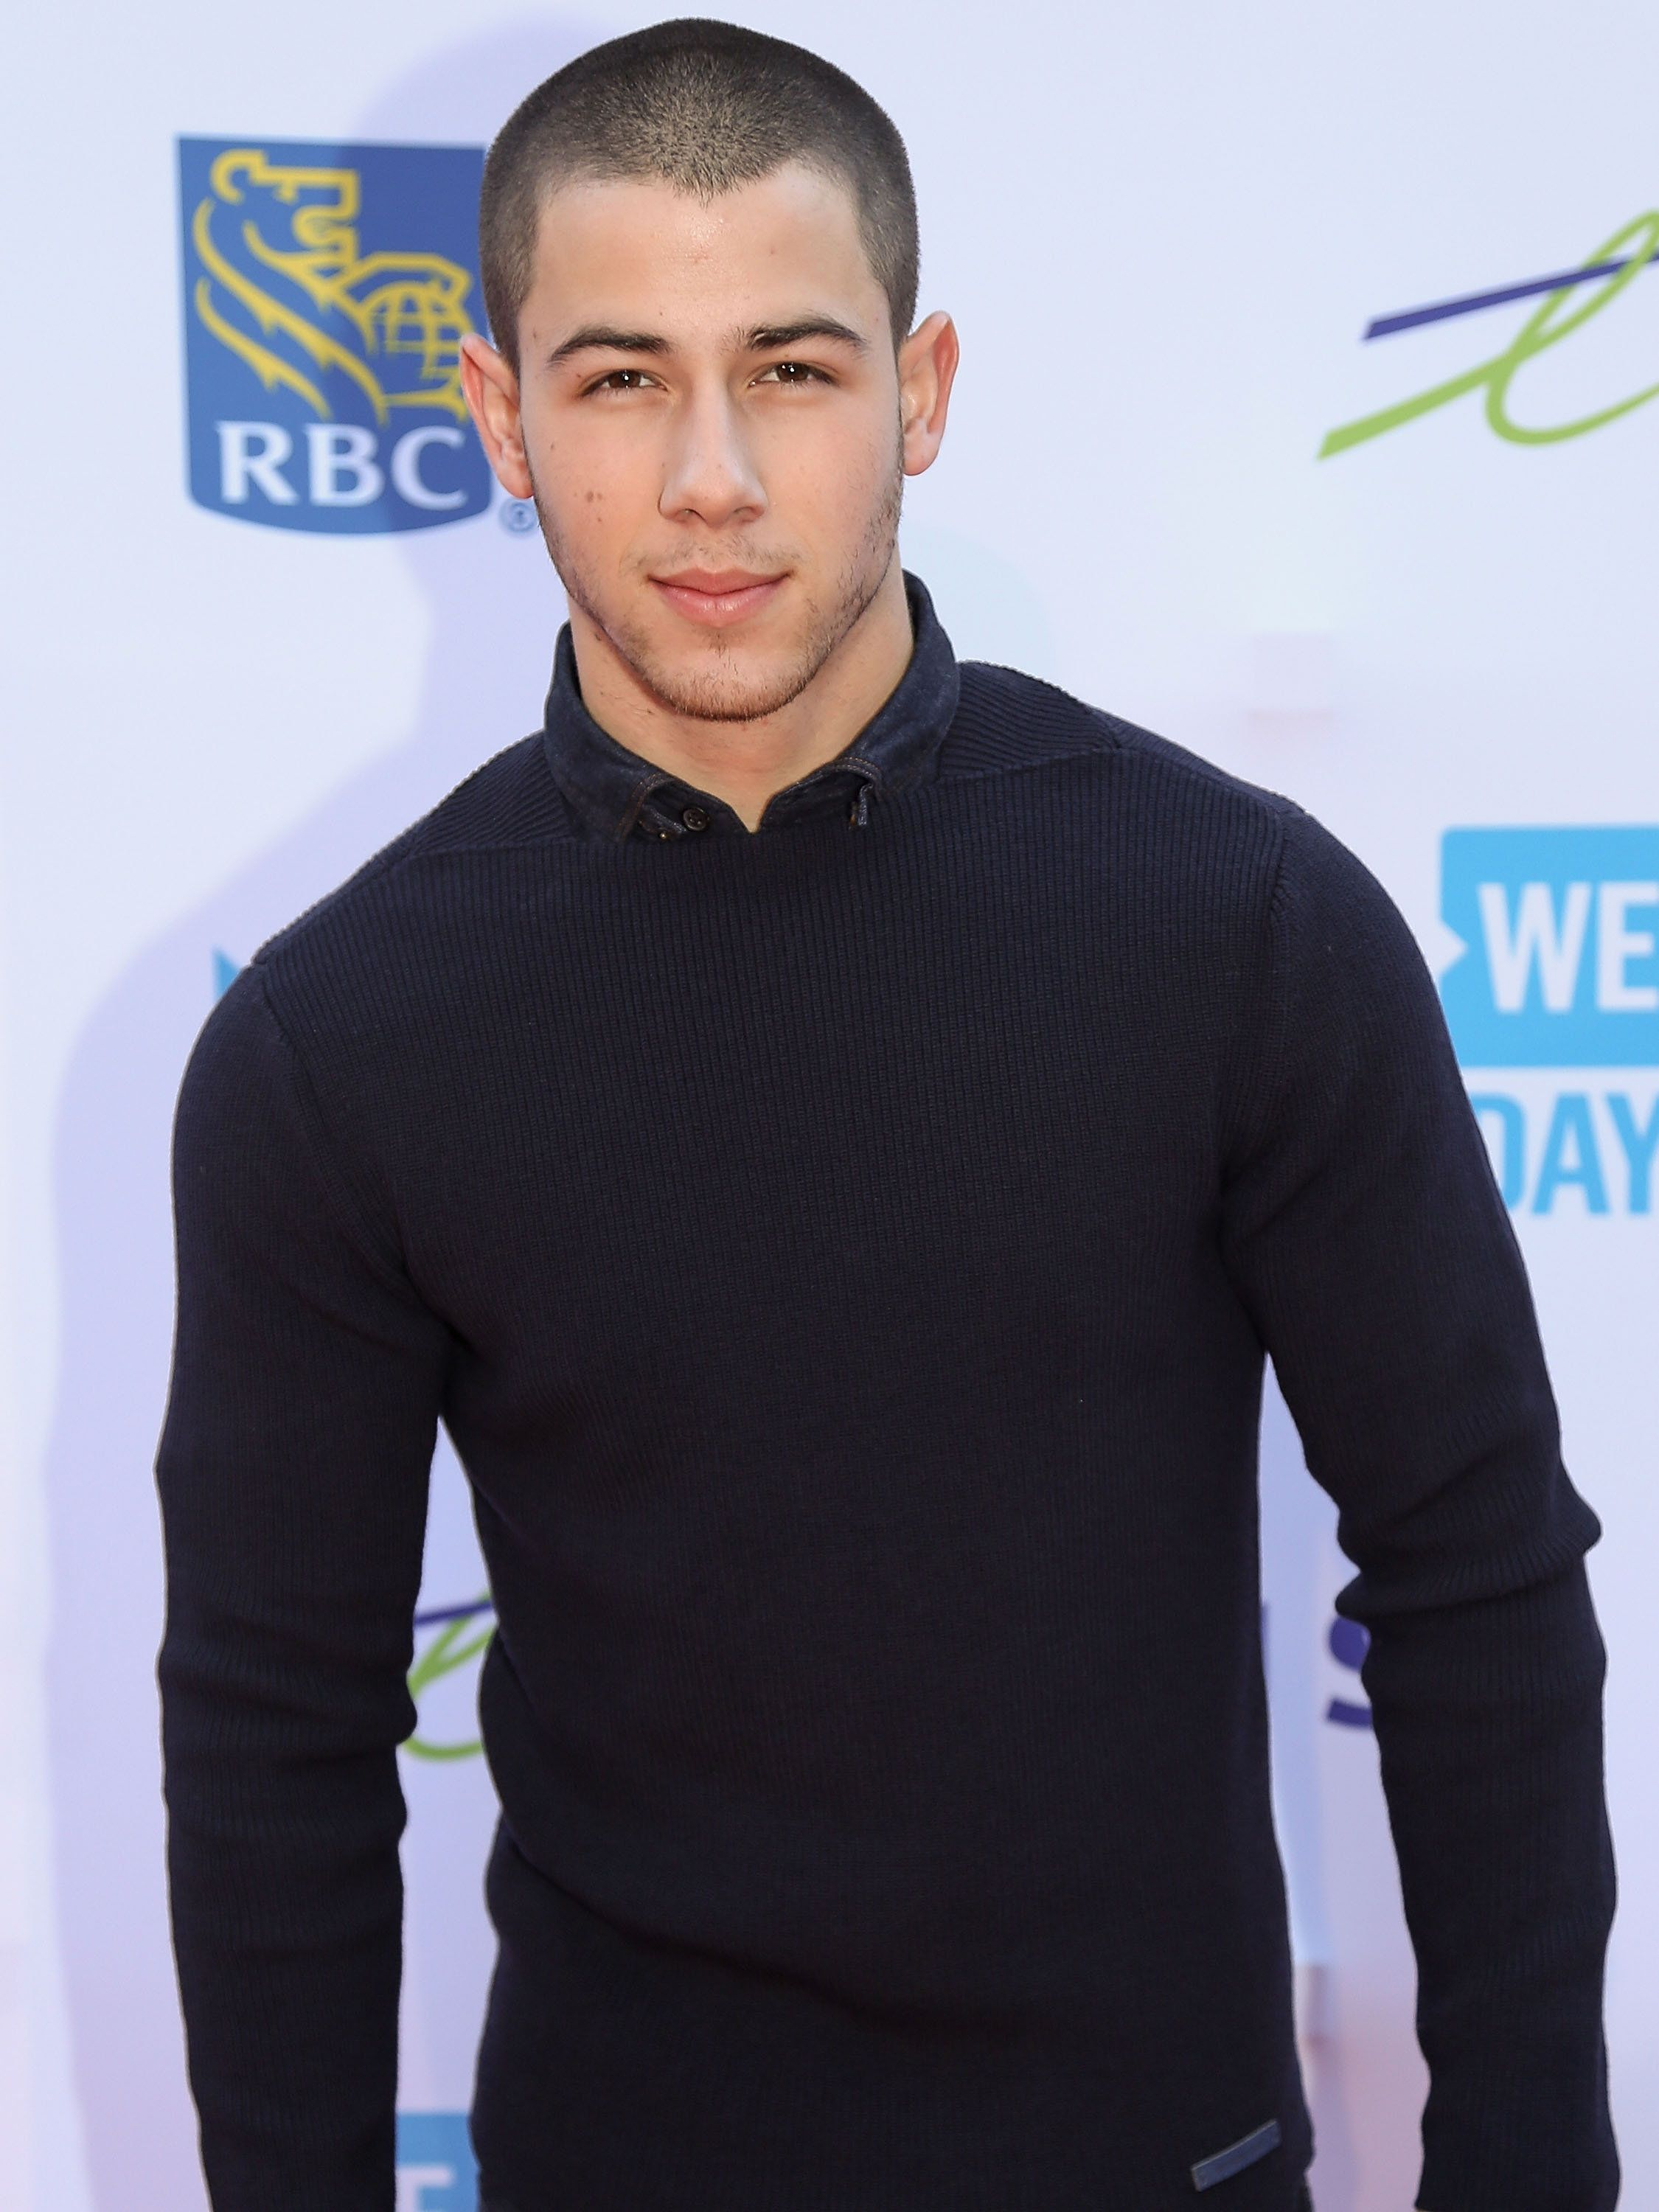 TORONTO, ON - OCTOBER 01:  Nick Jonas attends WE Day Toronto at the Air Canada Centre on October 1, 2015 in Toronto, Canada.  (Photo by Isaiah Trickey/FilmMagic)